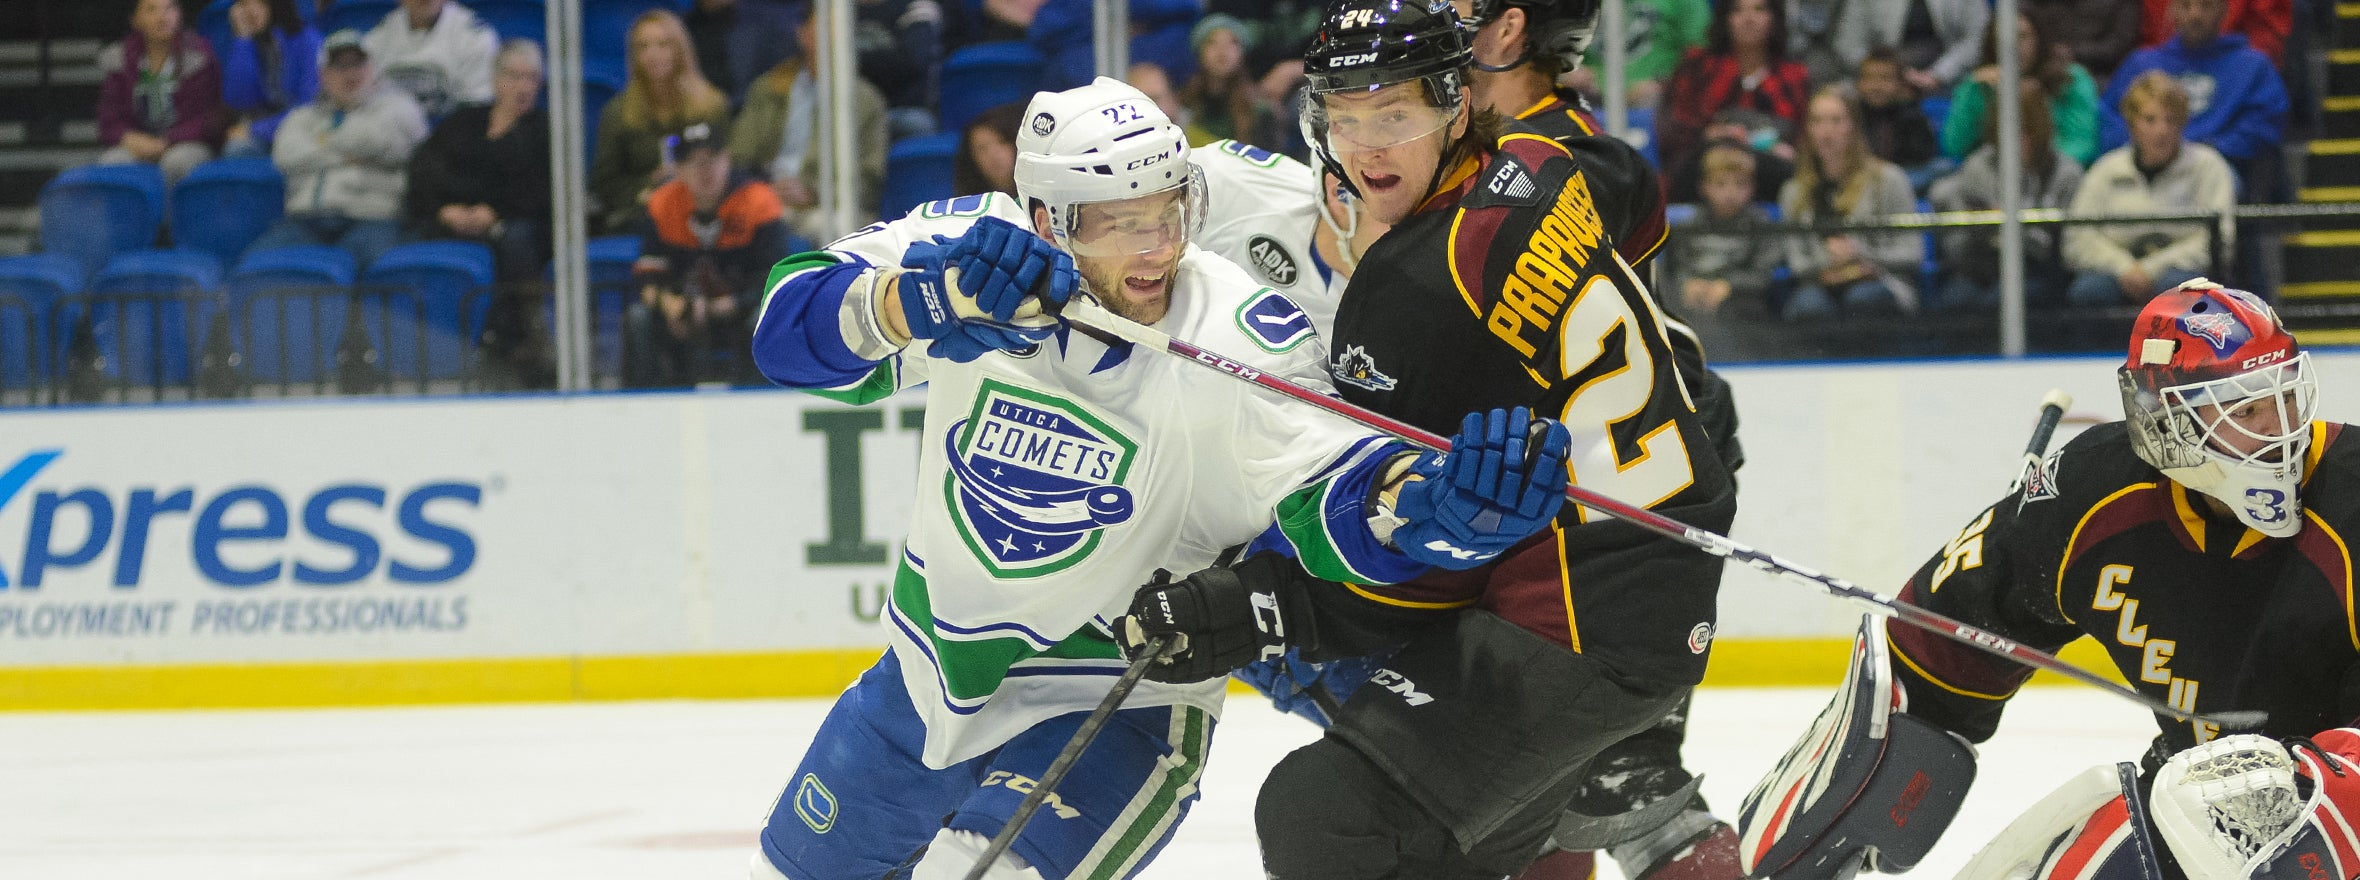 COMETS FALL SHORT AGAINST CLEVELAND